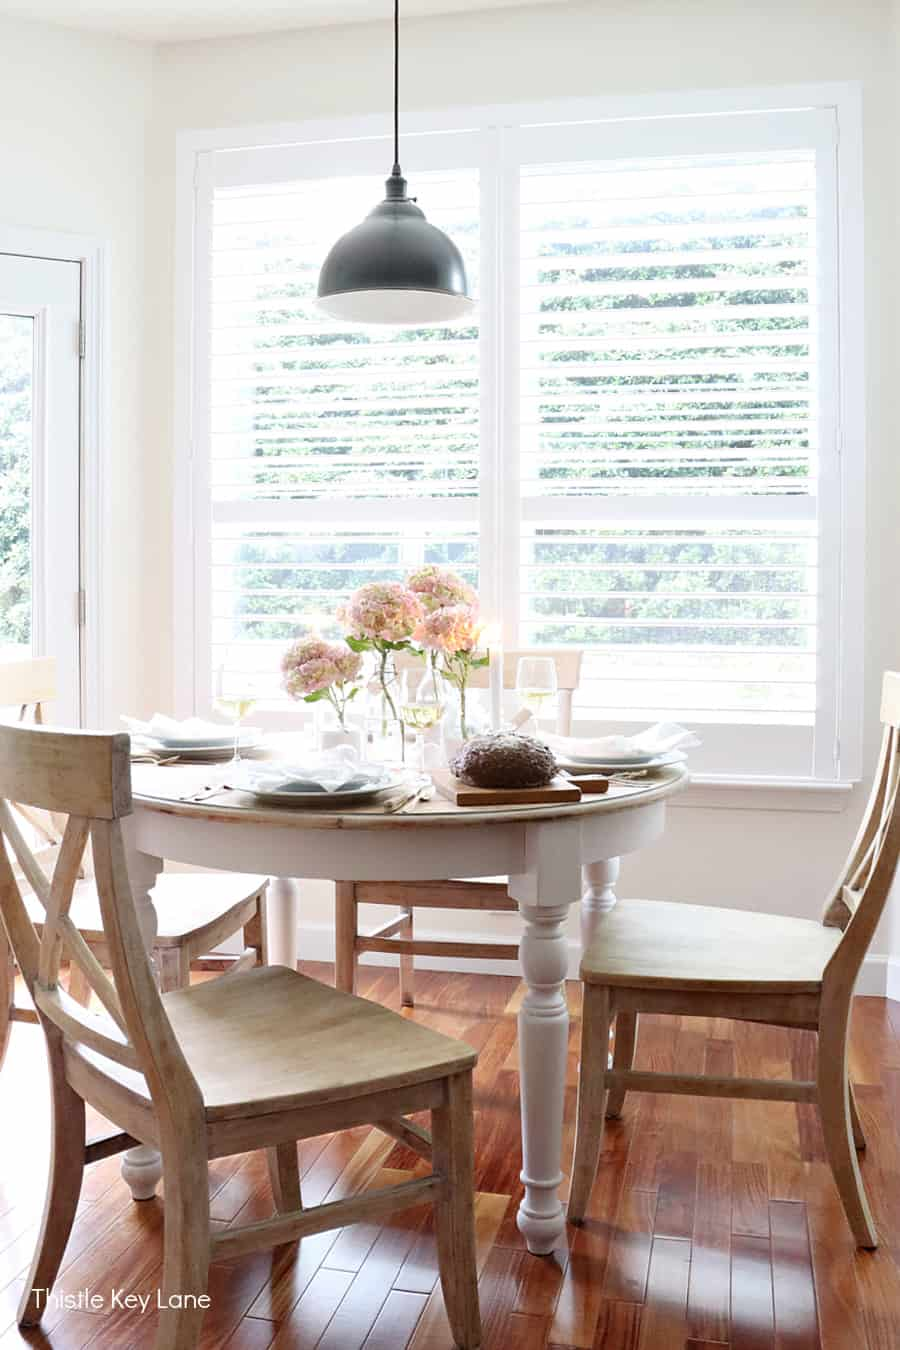 View of table and chair set for summer entertaining. Summer Tablescape With Glass Bottle Vase.